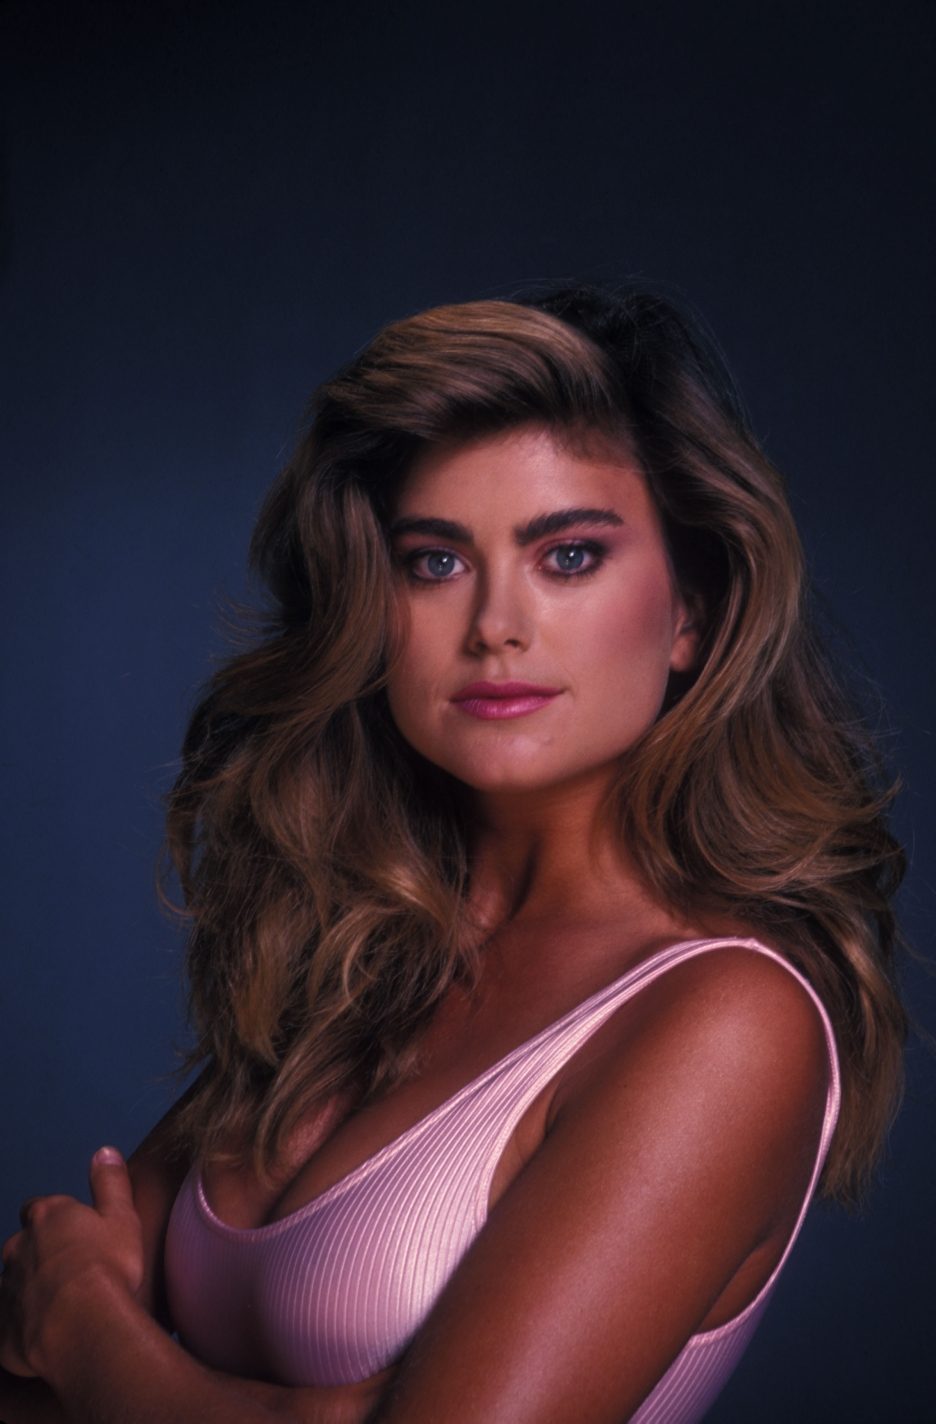 Photos Kathy Ireland nudes (13 photo), Pussy, Sideboobs, Feet, in bikini 2006